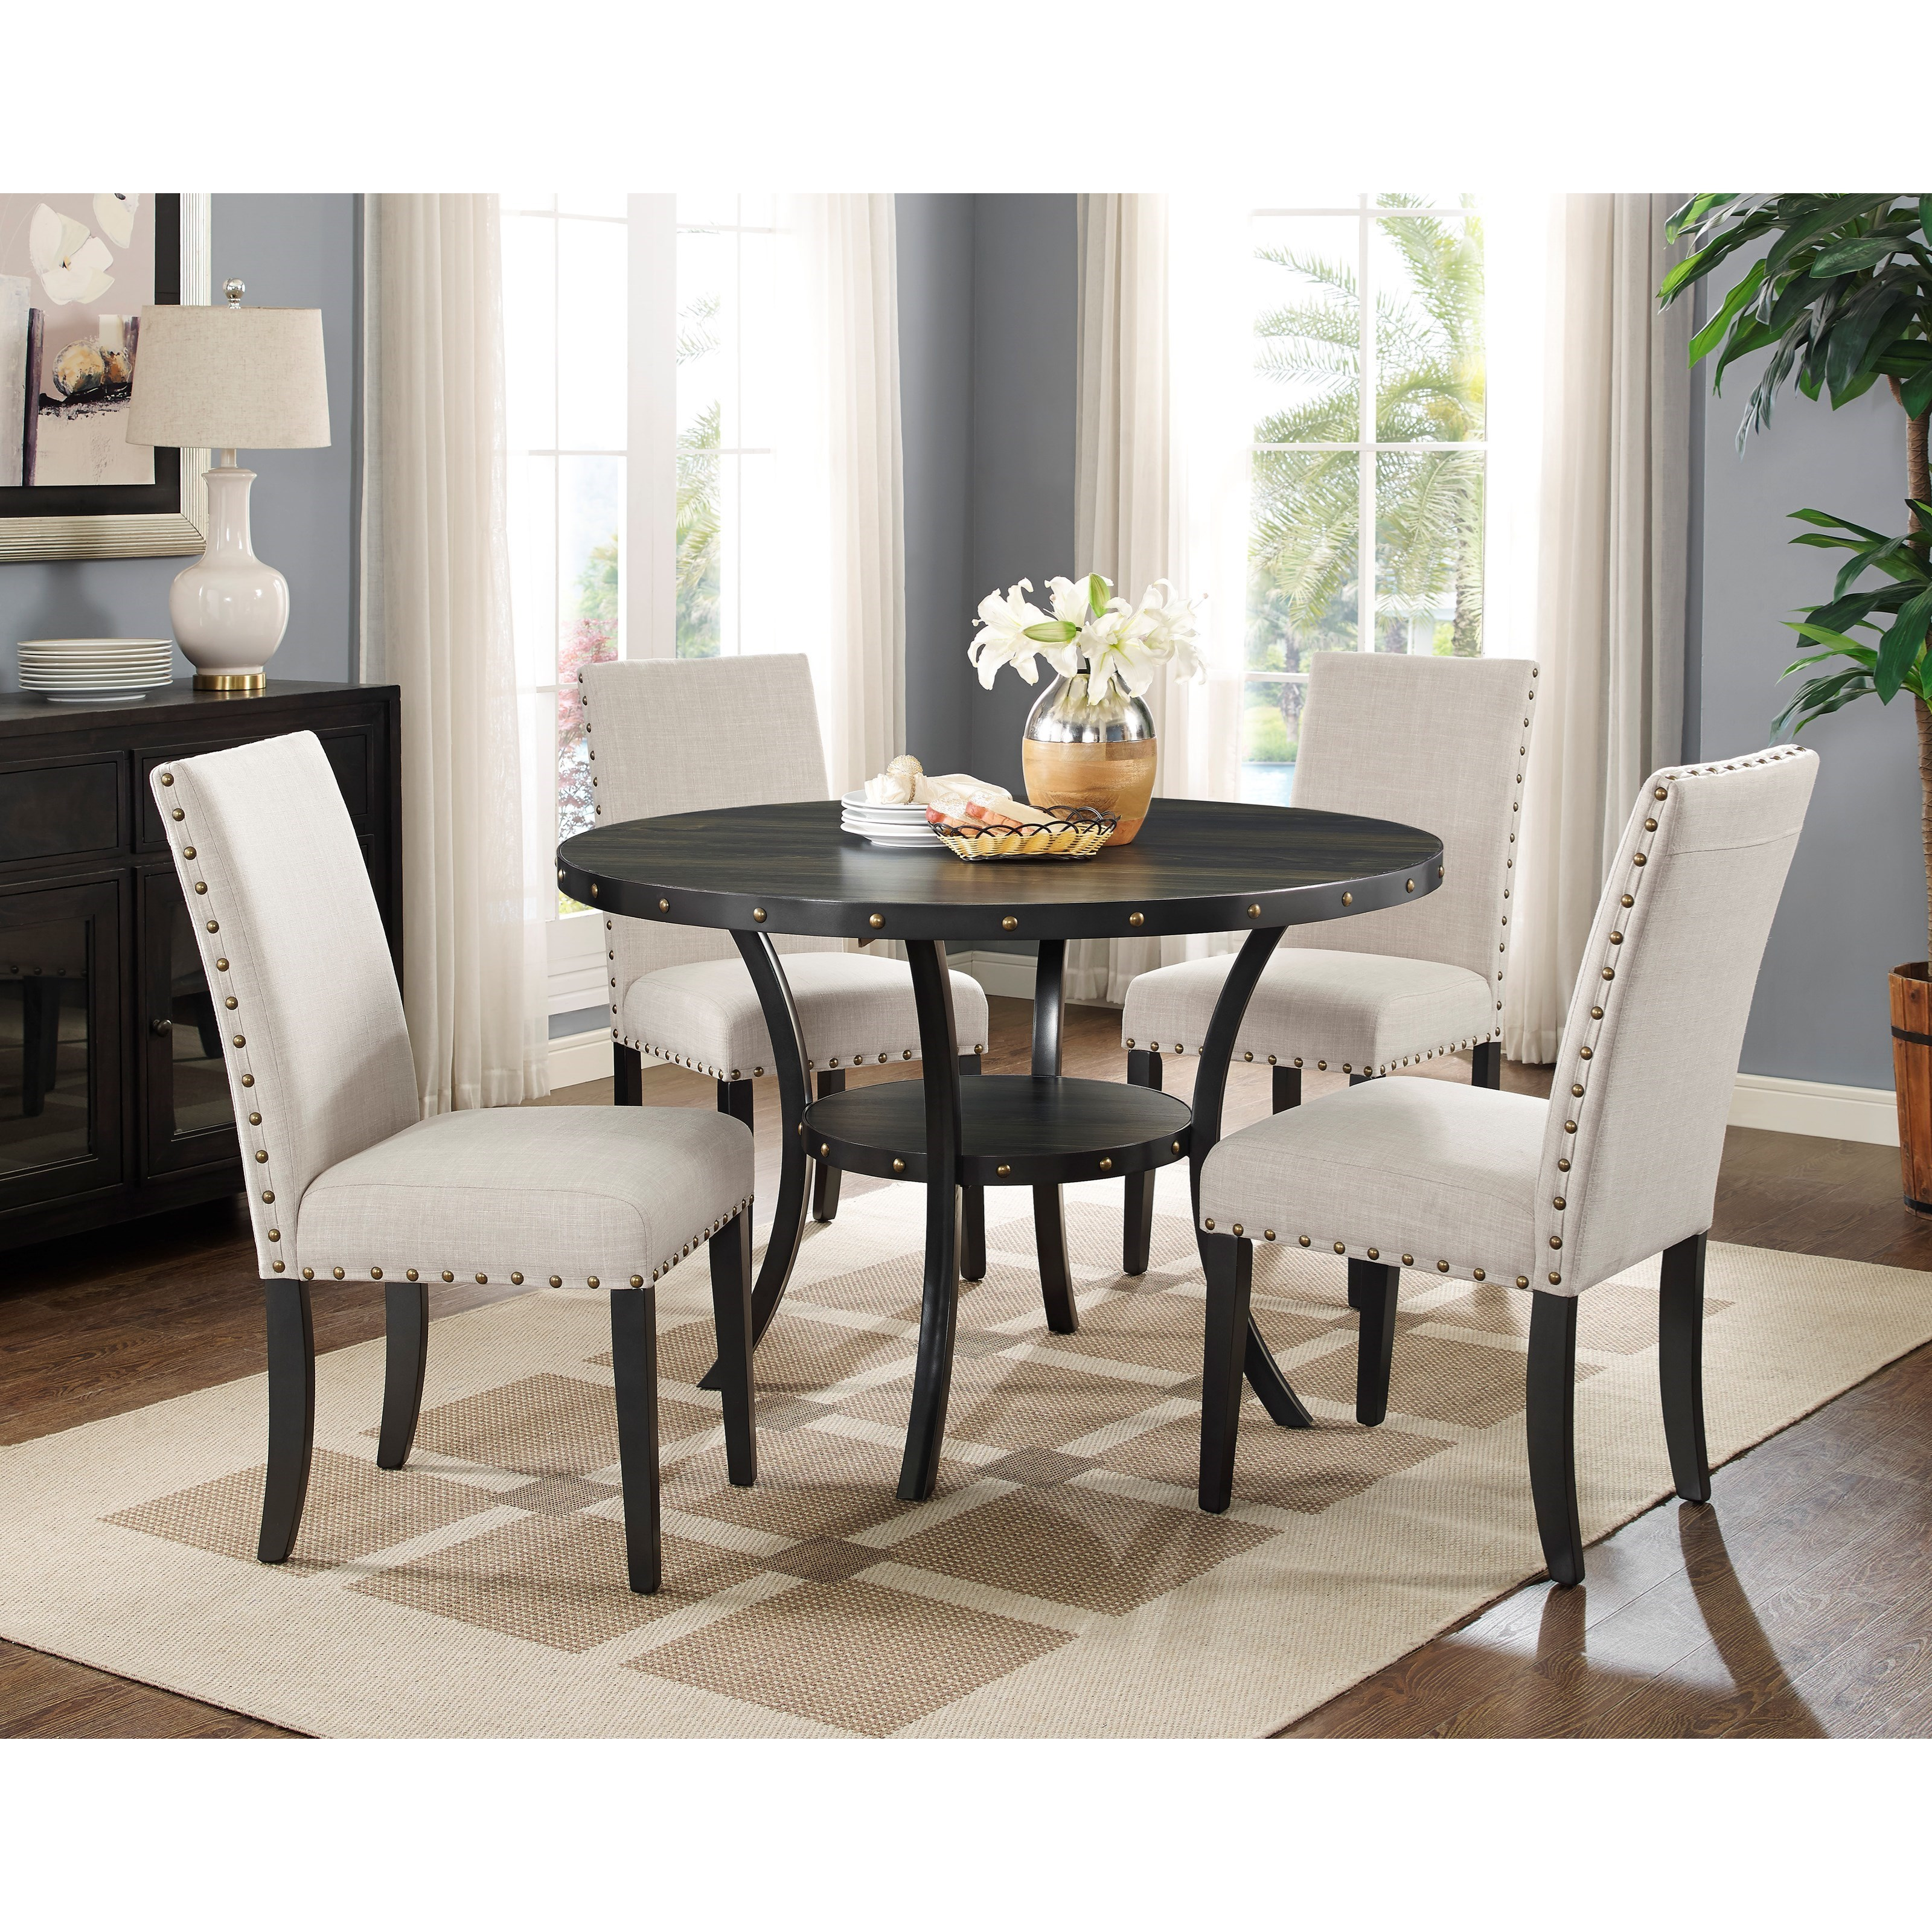 Crispin 5-Piece Table and Chair Set by New Classic at Beds N Stuff